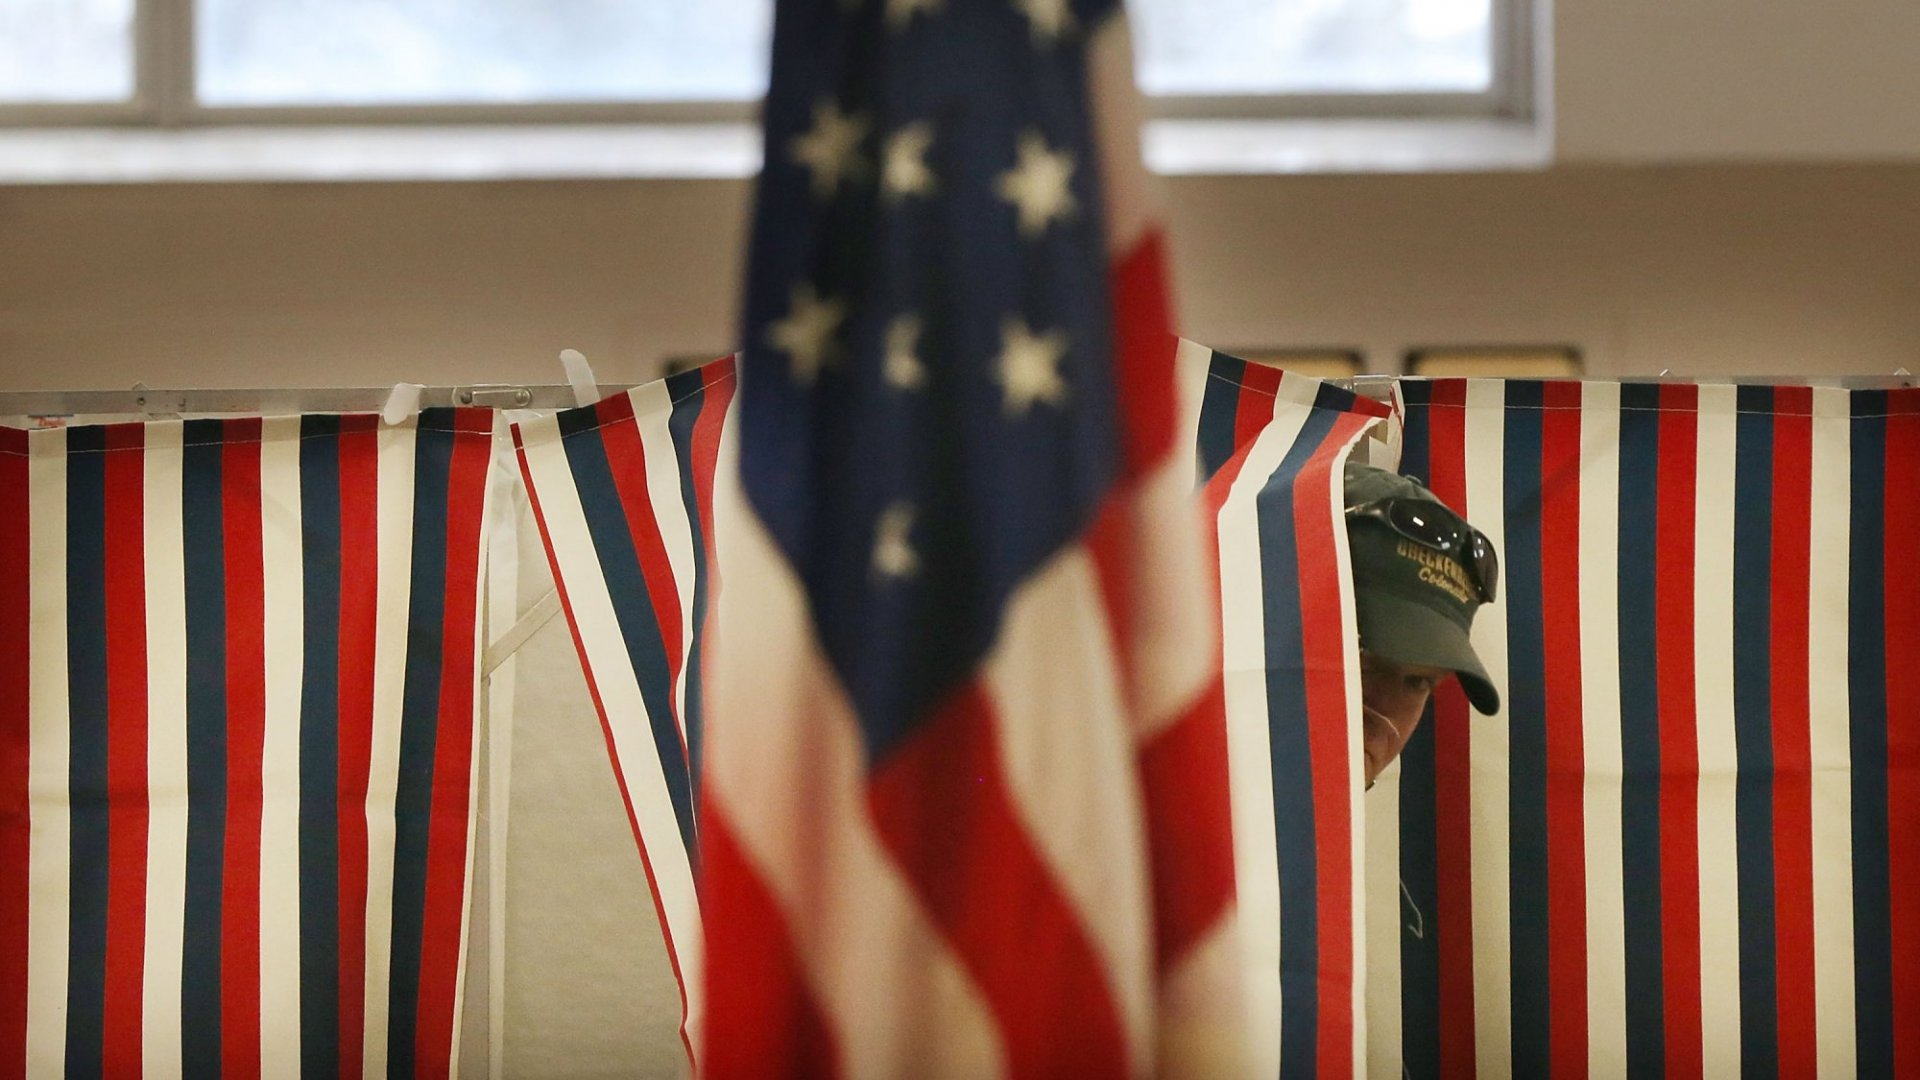 Here's the Brilliantly Simple Way to Fix Voting in the United States. (So Why Don't We Just Do It?)